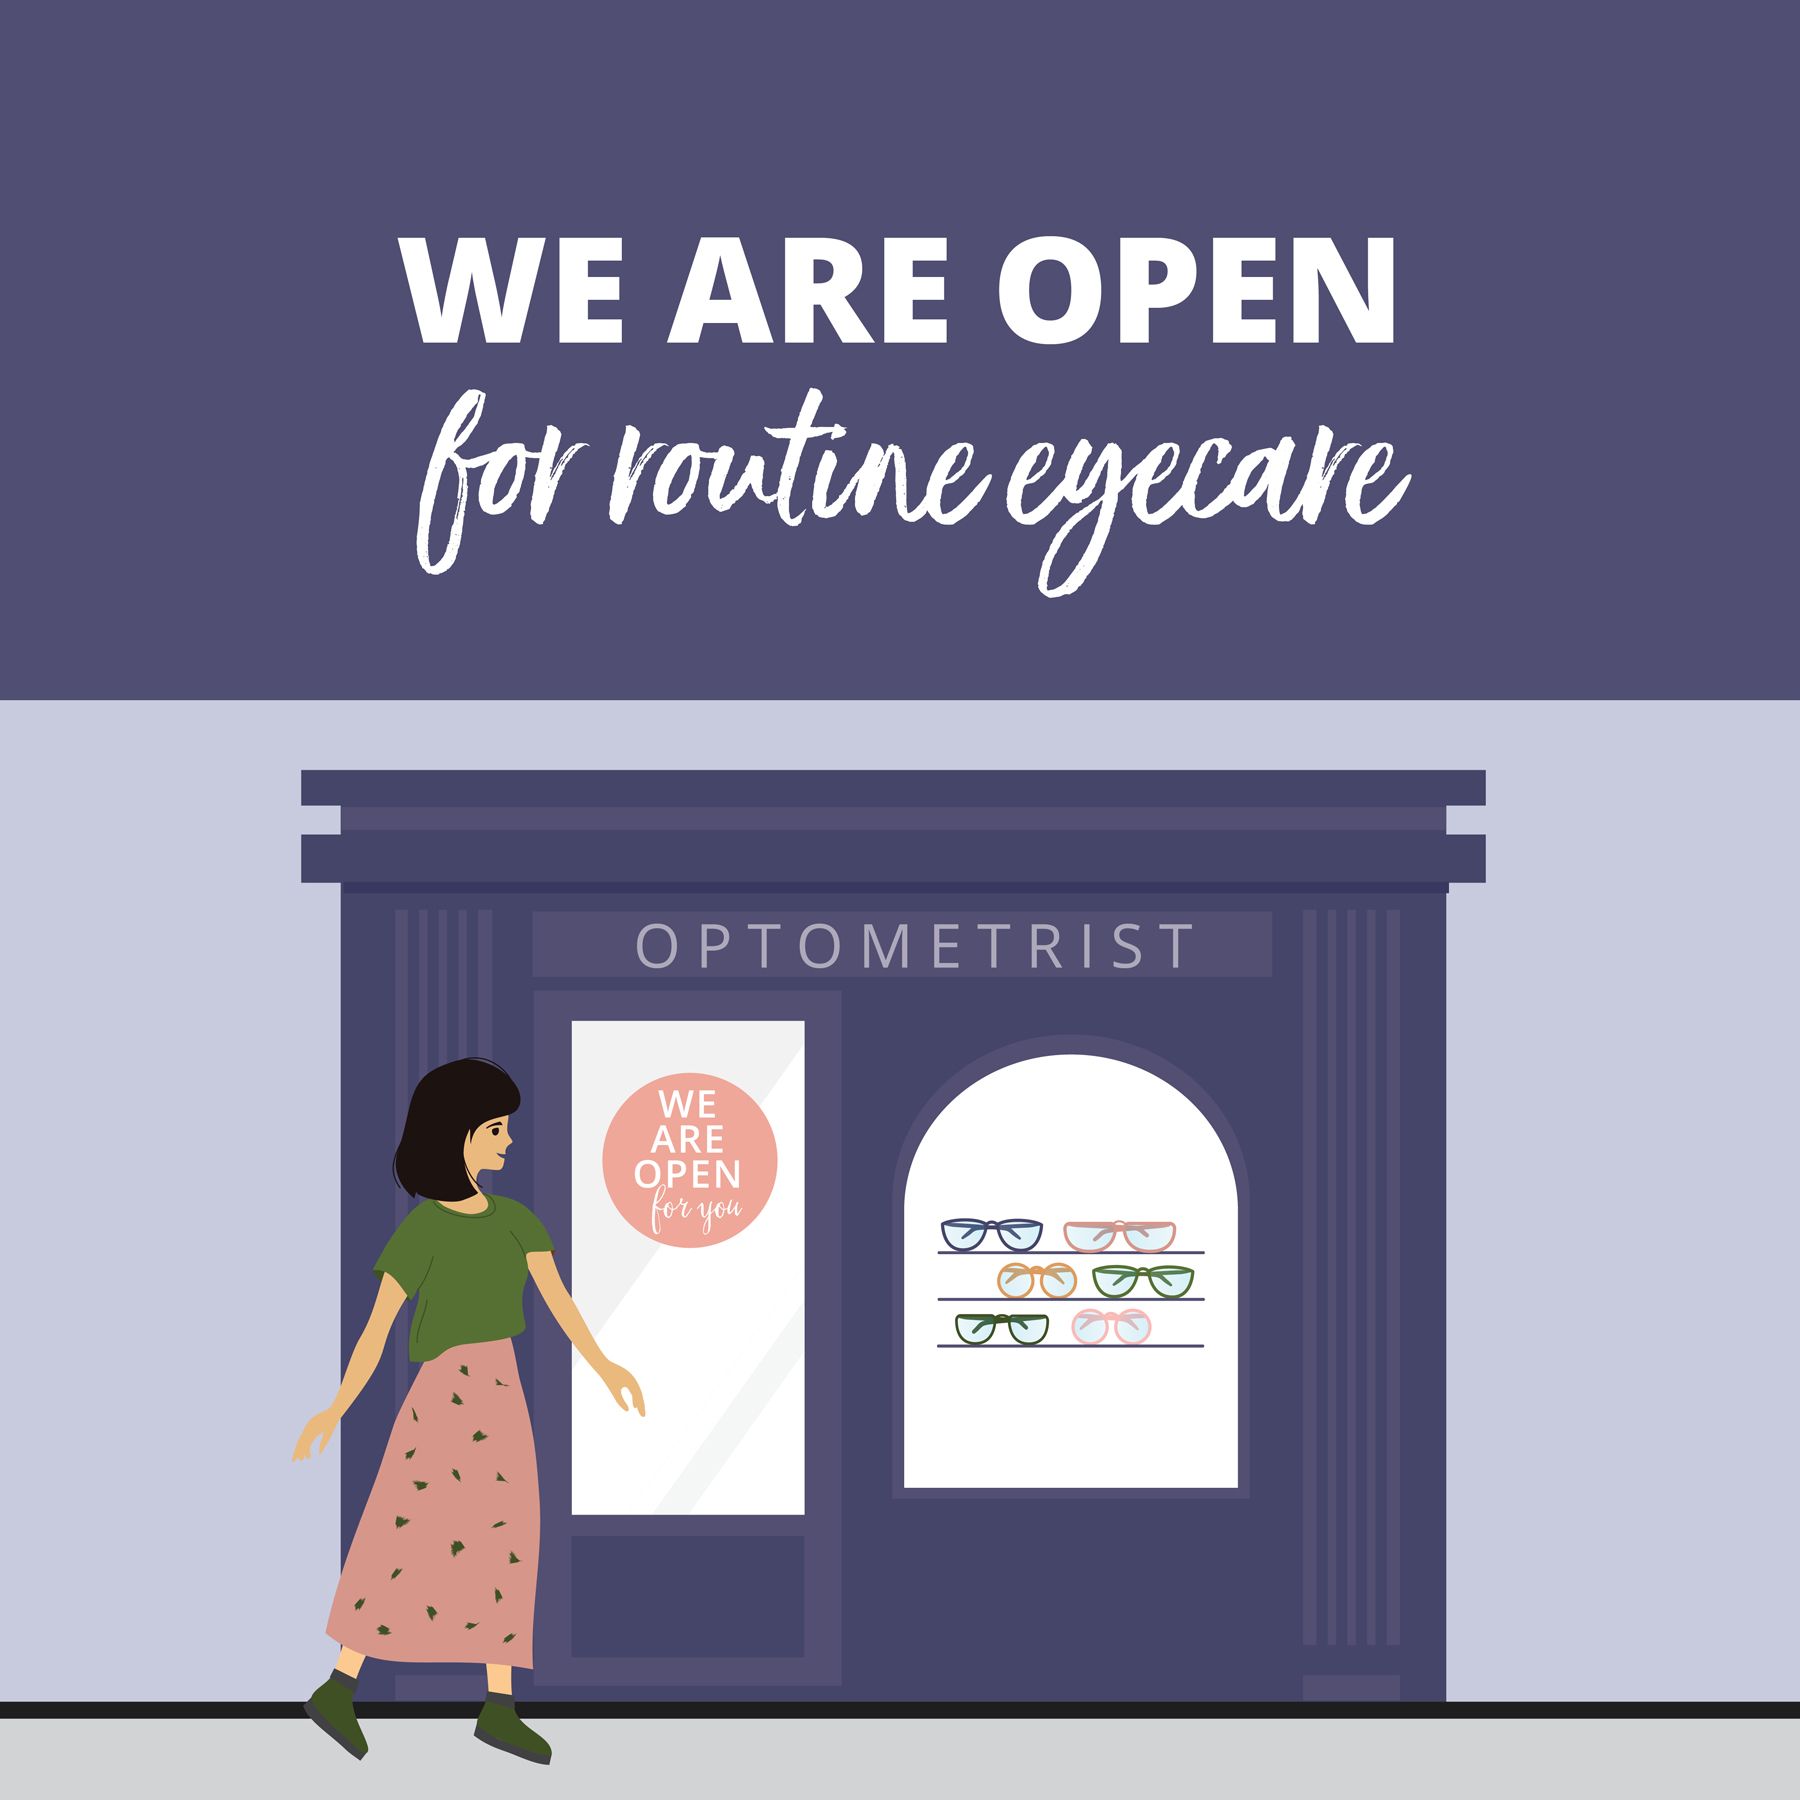 We have now re-opened for rountine eyecare